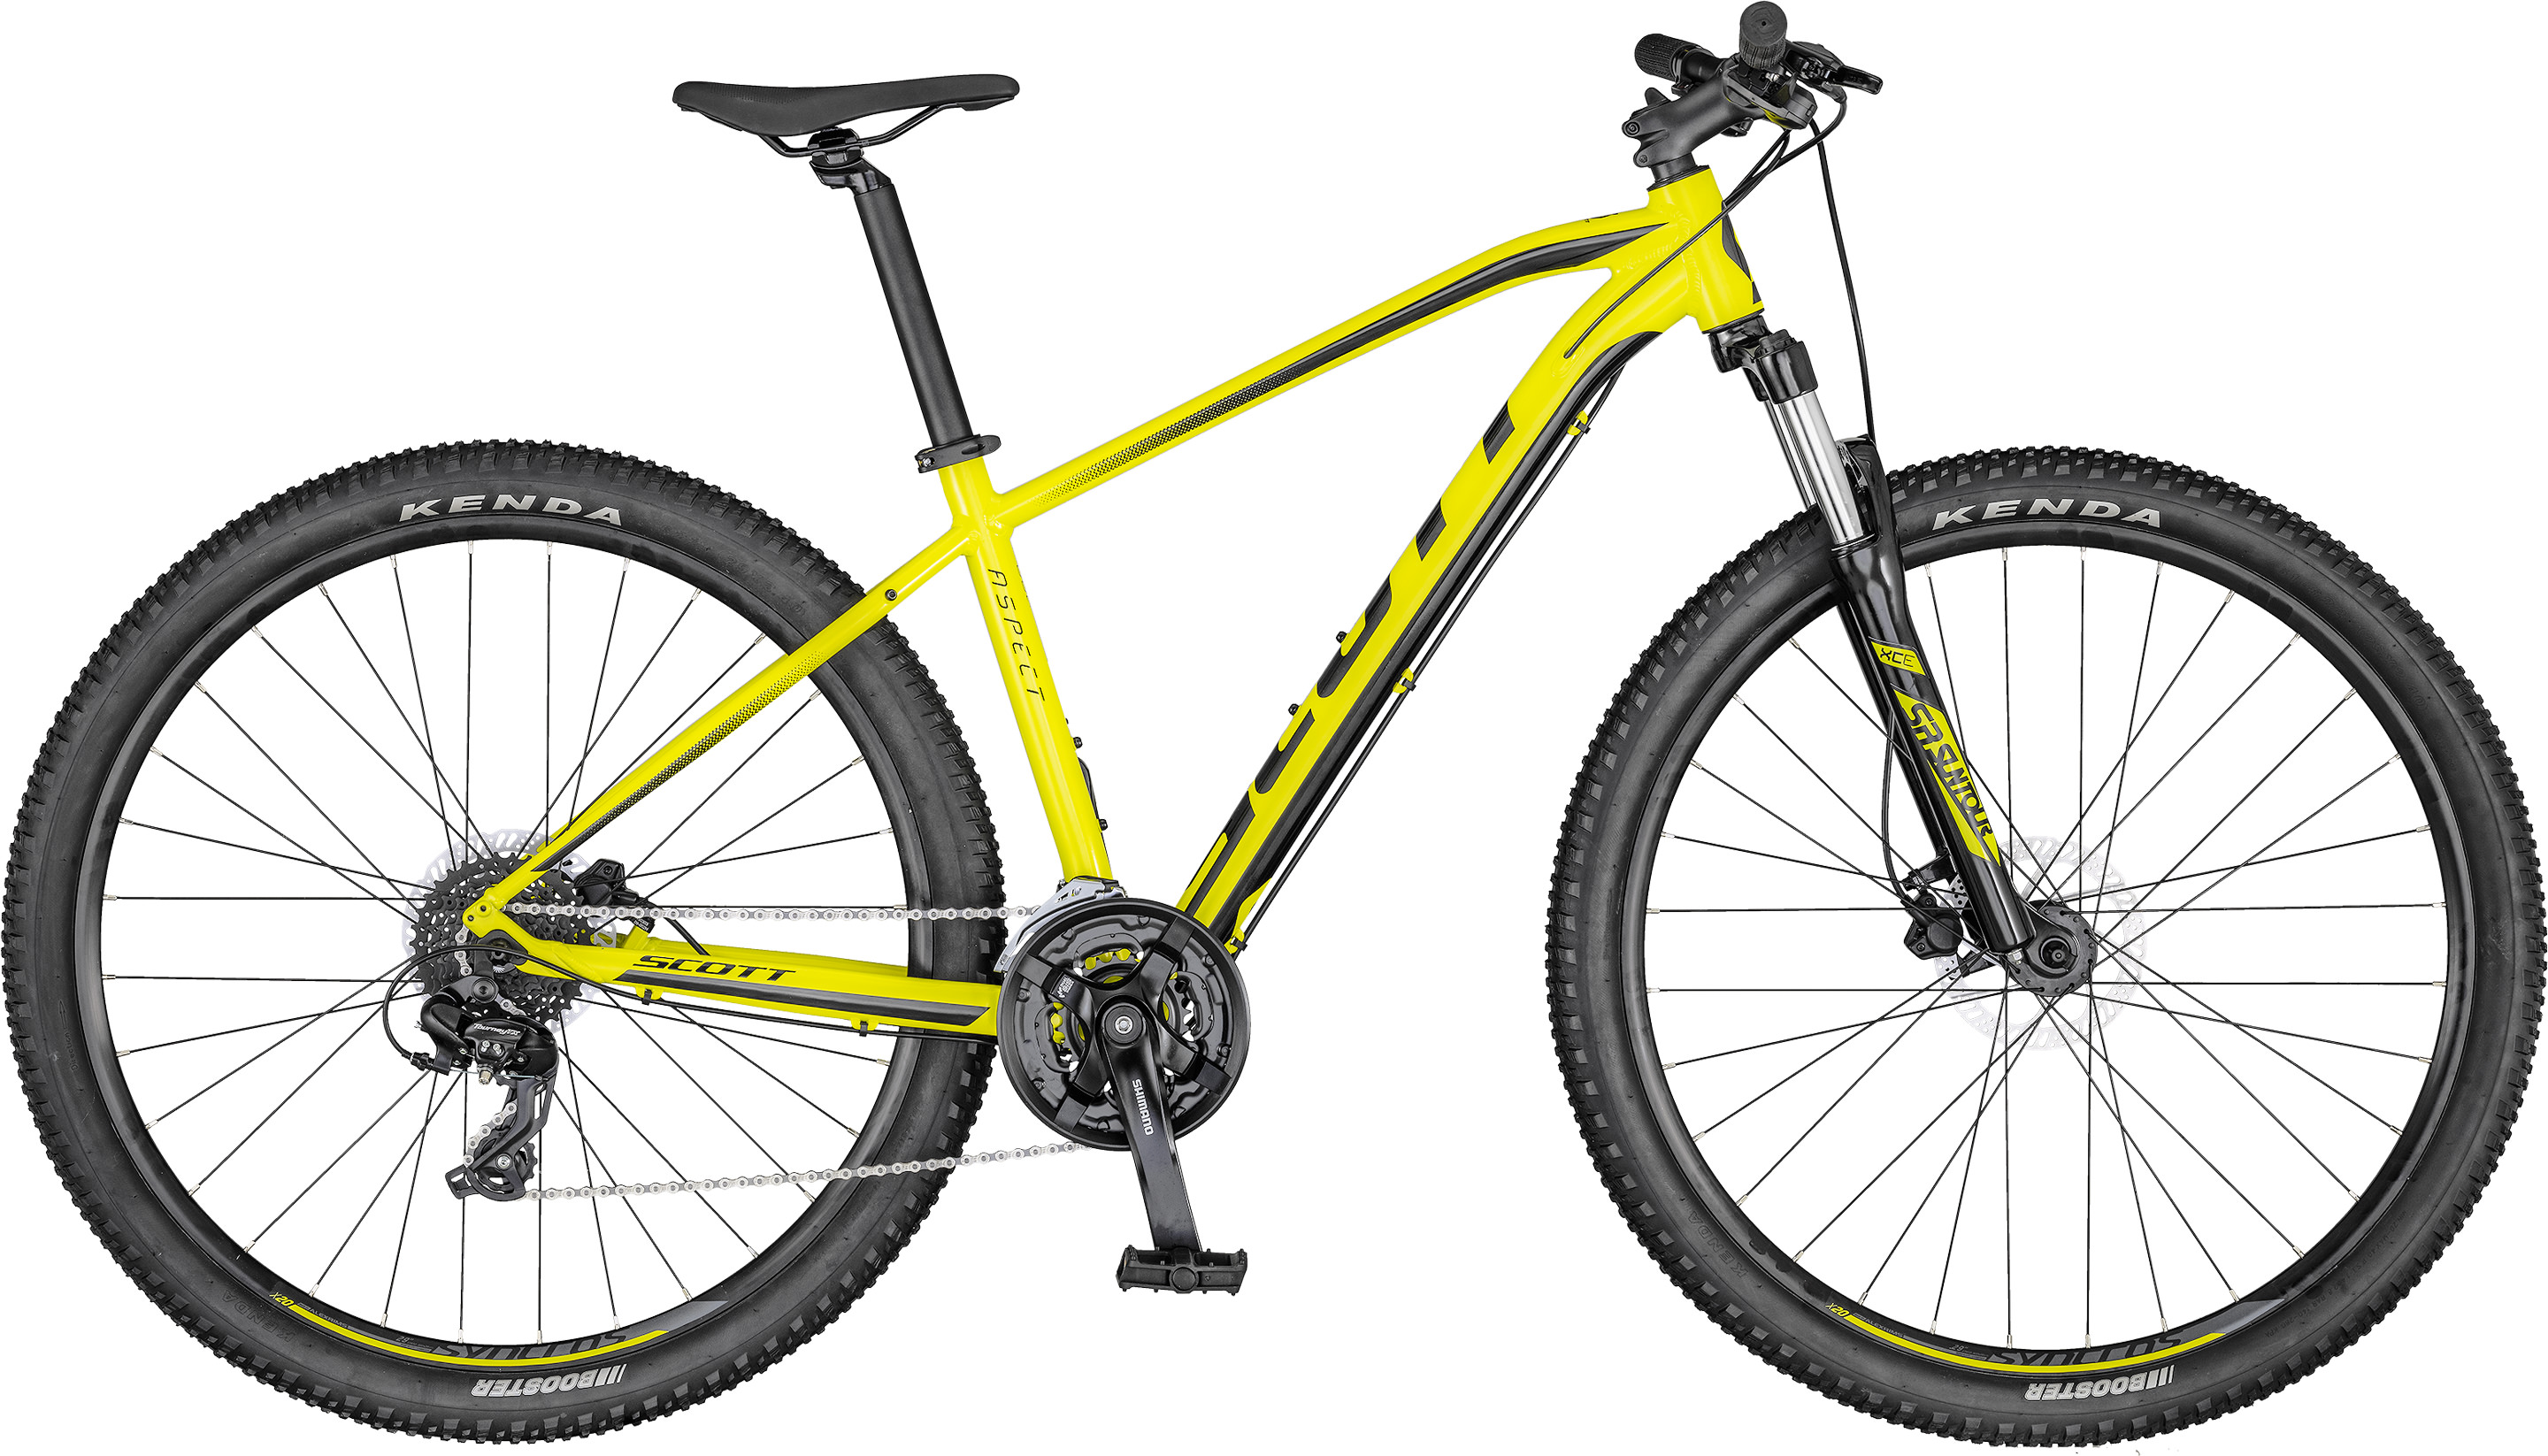 Aspect 760 yellow/black | Culture Vélo